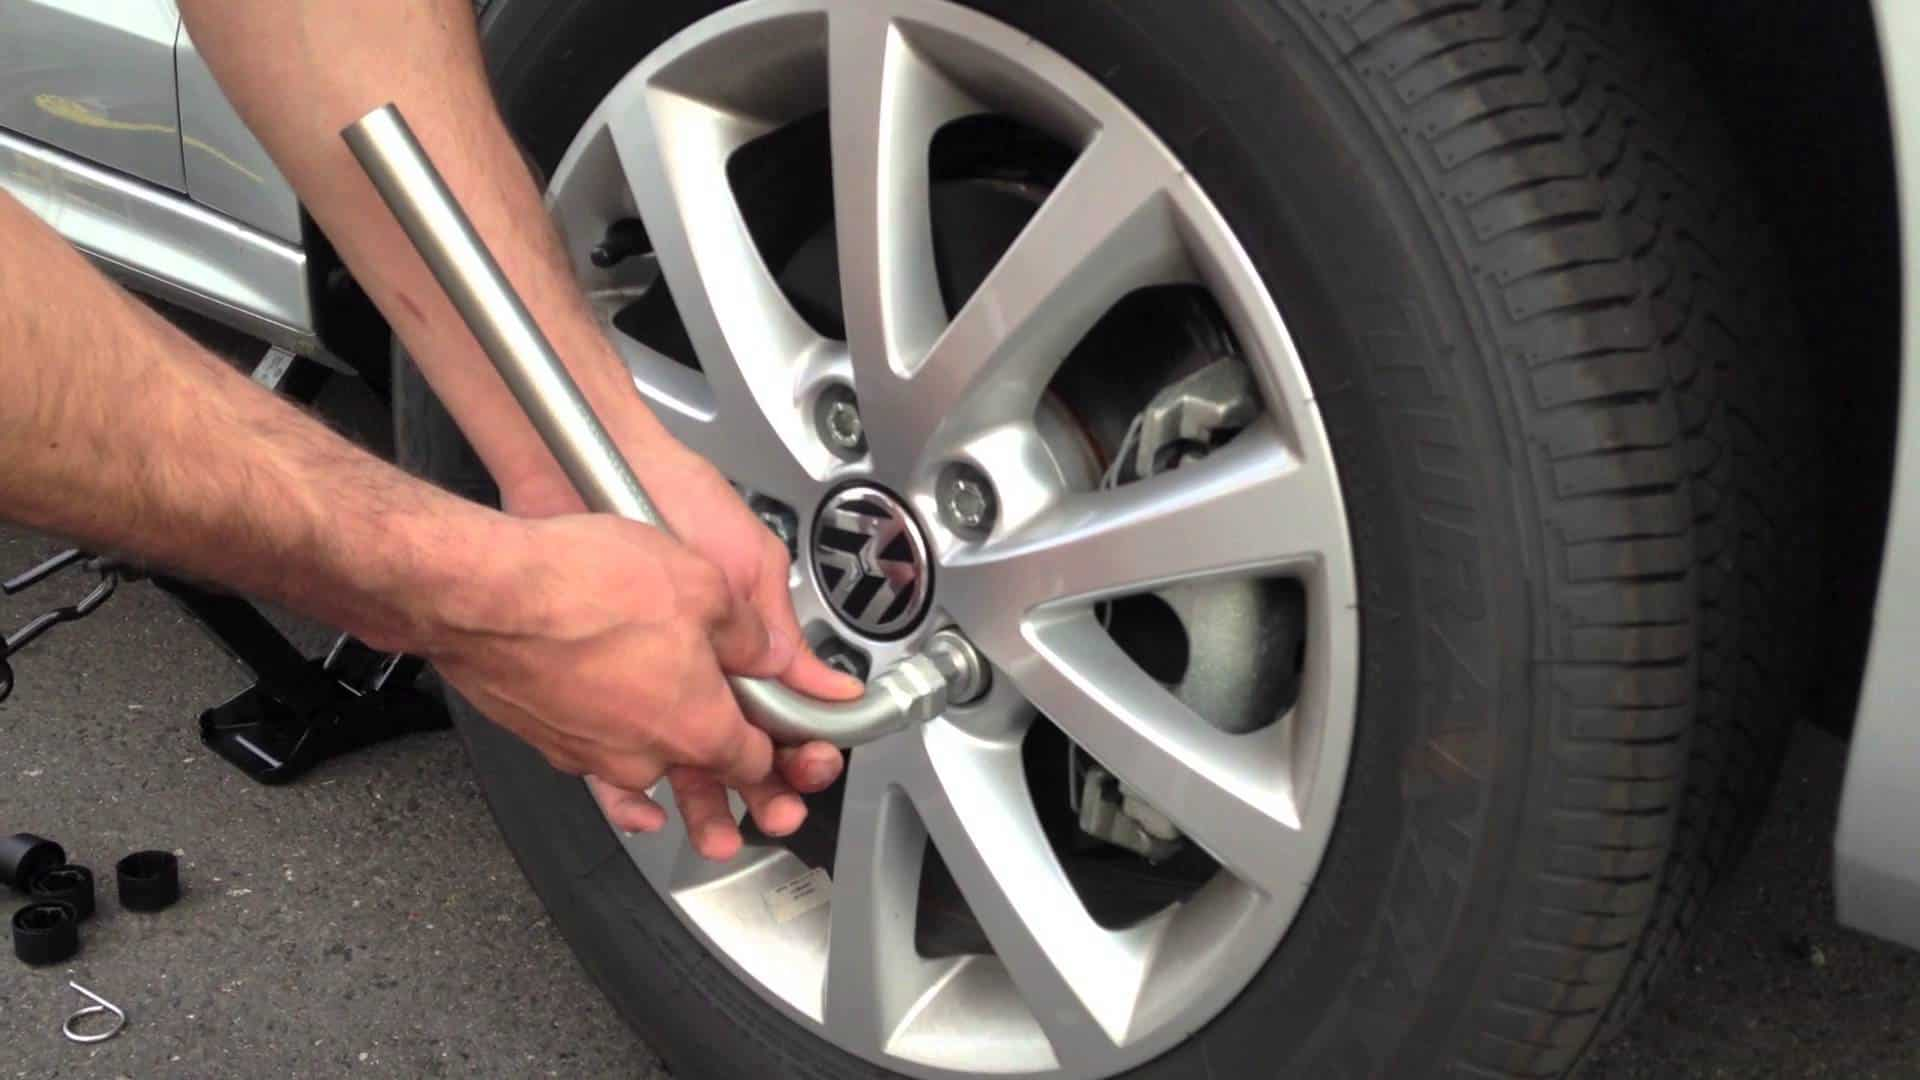 hand using a lug nut in how to break a lug nut off